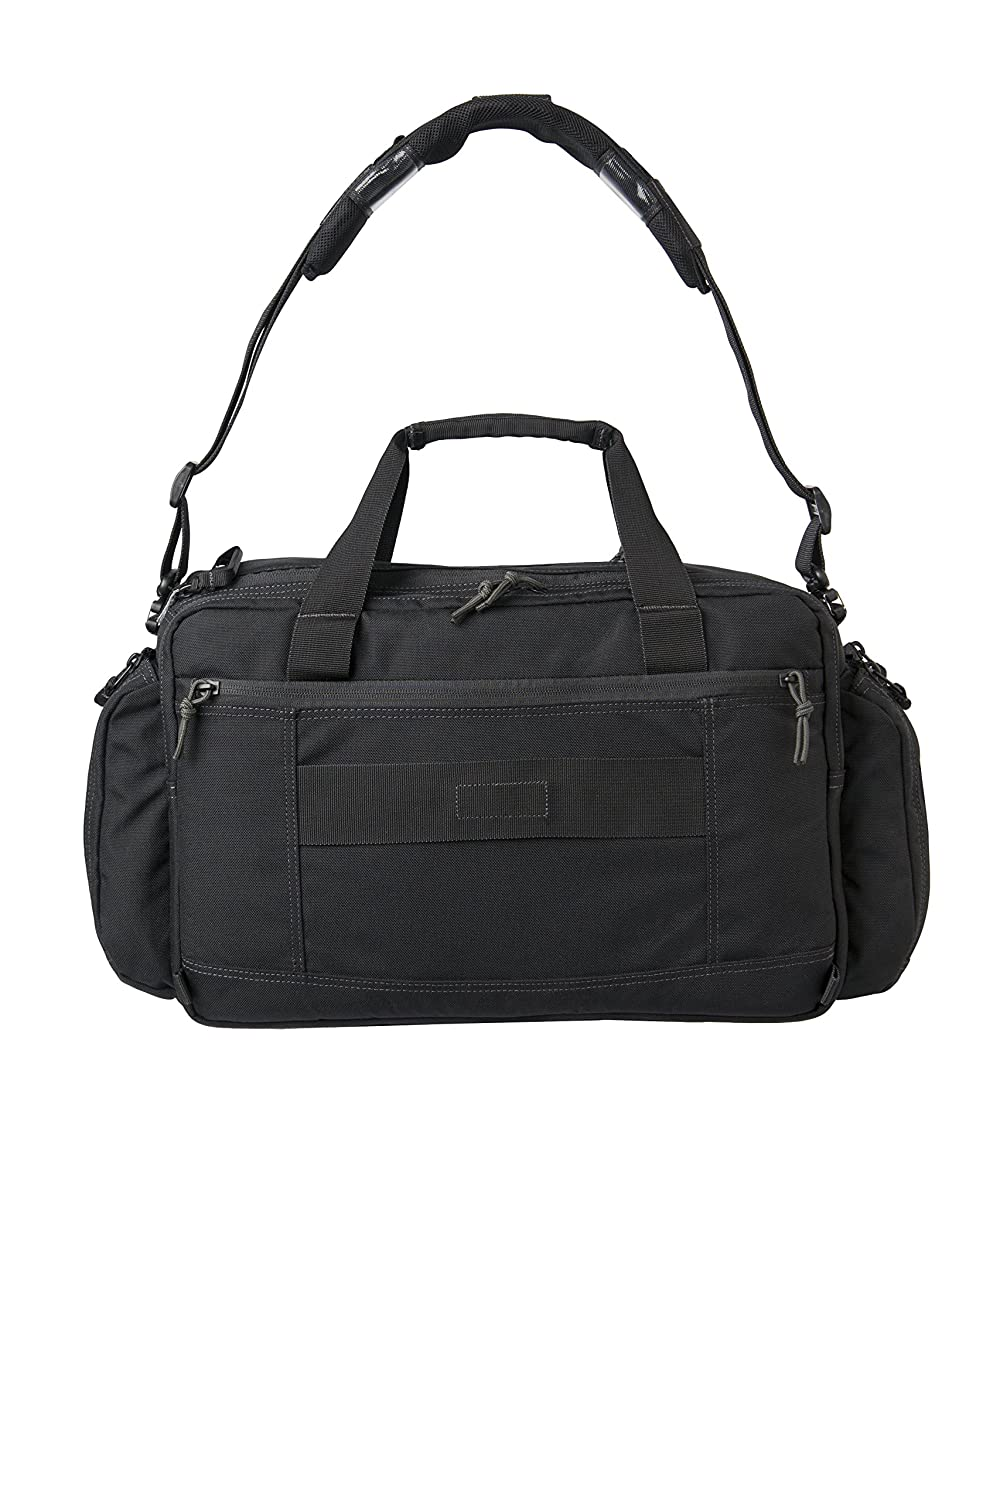 First Tactical Executive Briefcase, Black by First Tactical: Amazon.es: Deportes y aire libre